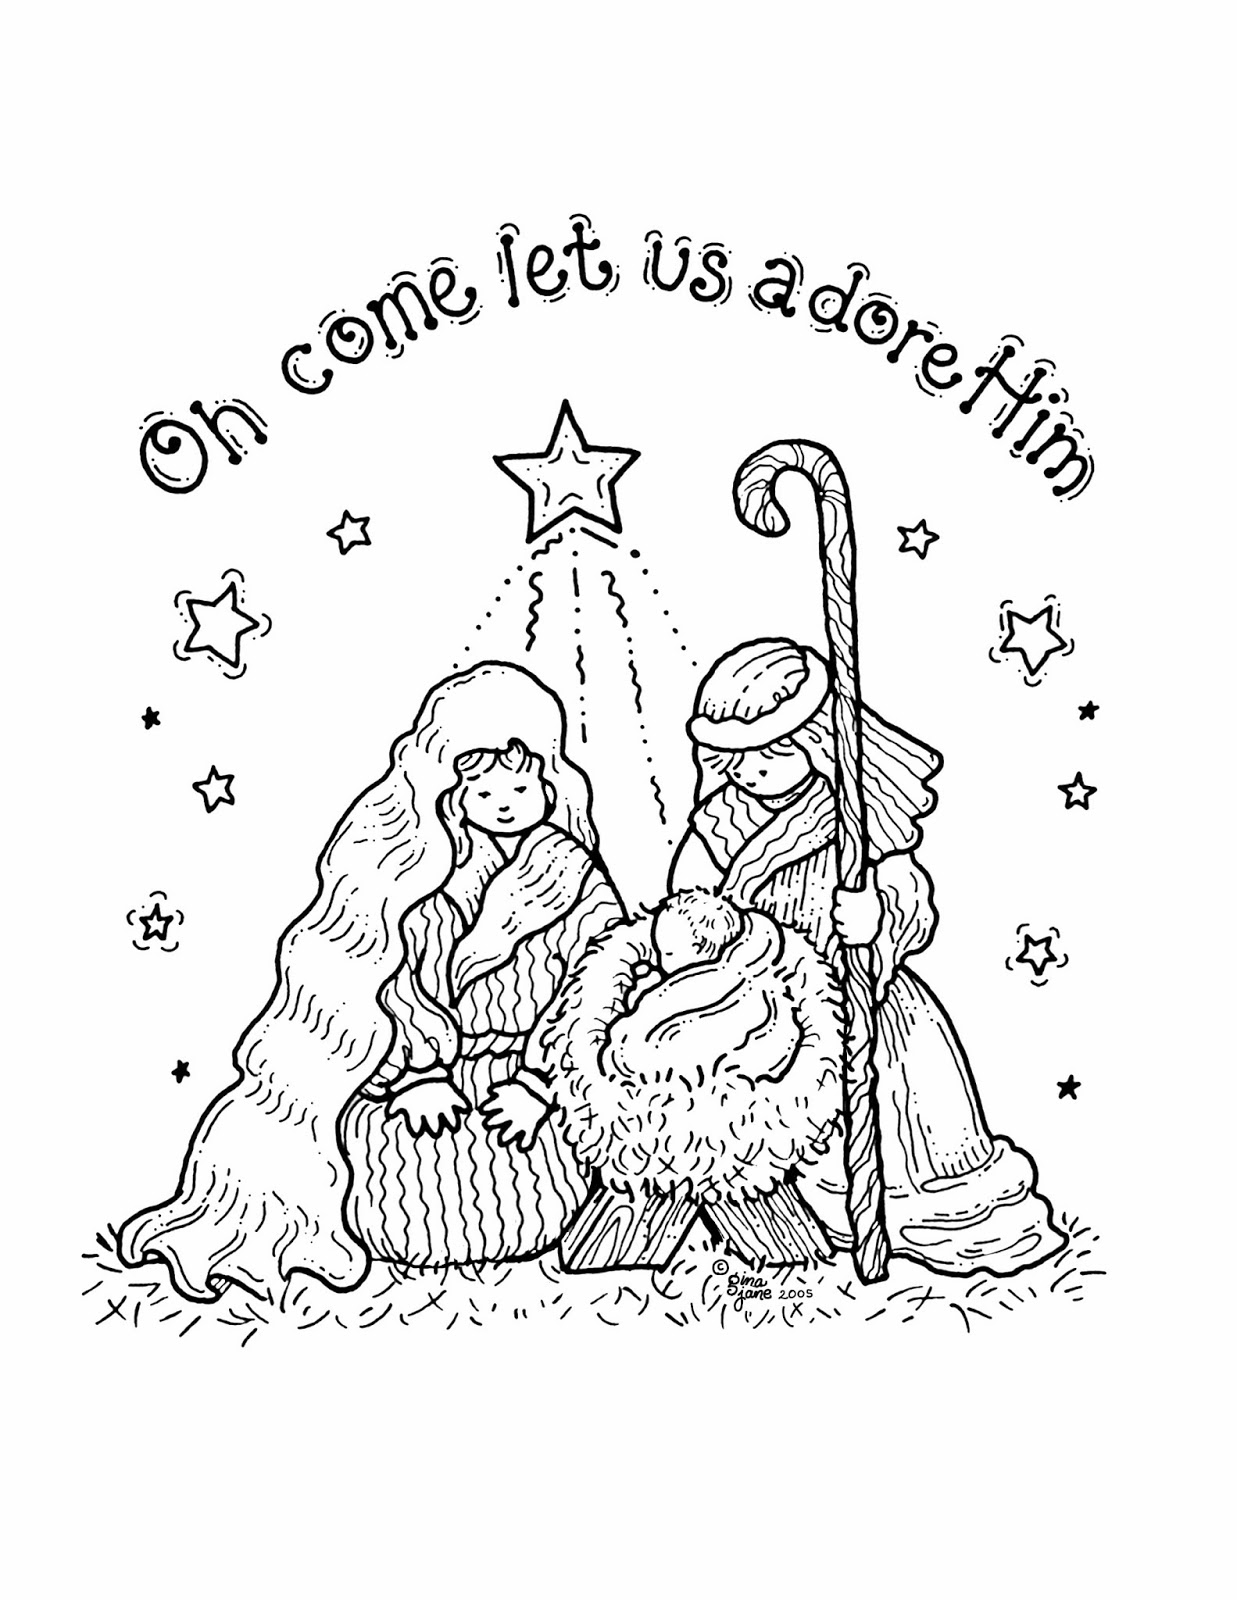 free printable nativity coloring pages Free Printable Nativity Coloring Pages for Kids   Best Coloring  free printable nativity coloring pages